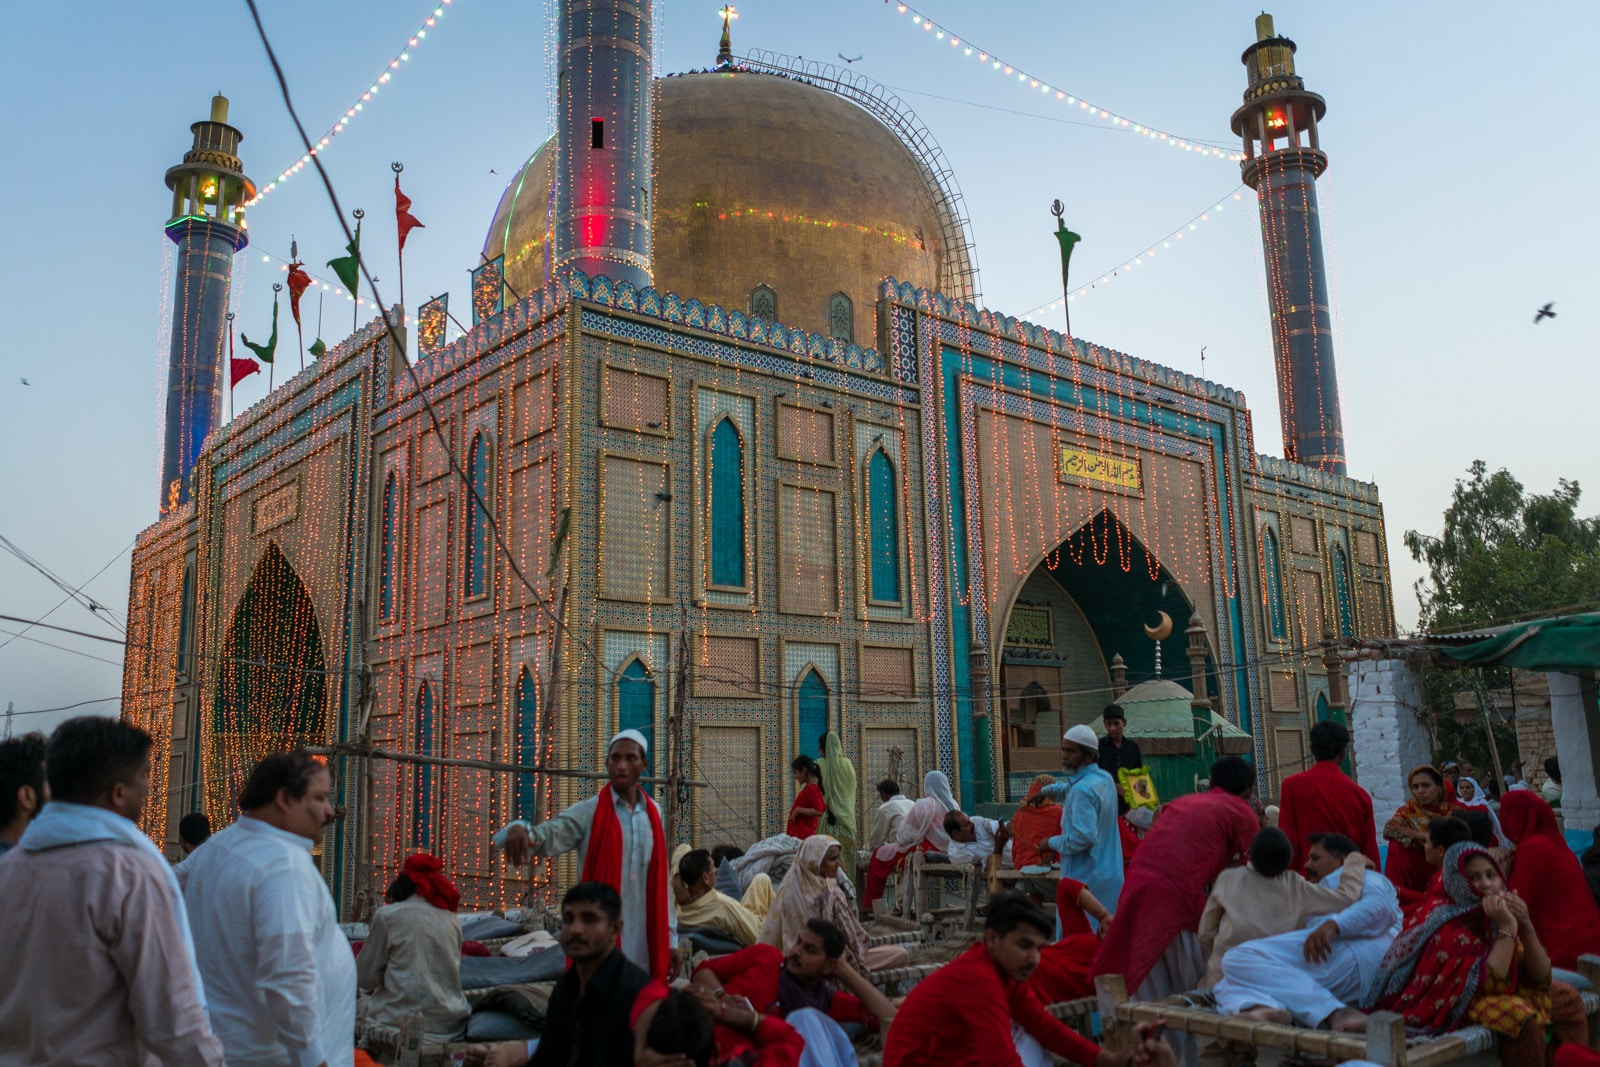 The Urs of Lal Shahbaz Qalandar in Sehwan, Pakistan - Crowds watching the dhamaal from a rooftop near the shrine - Lost With Purpose travel blog